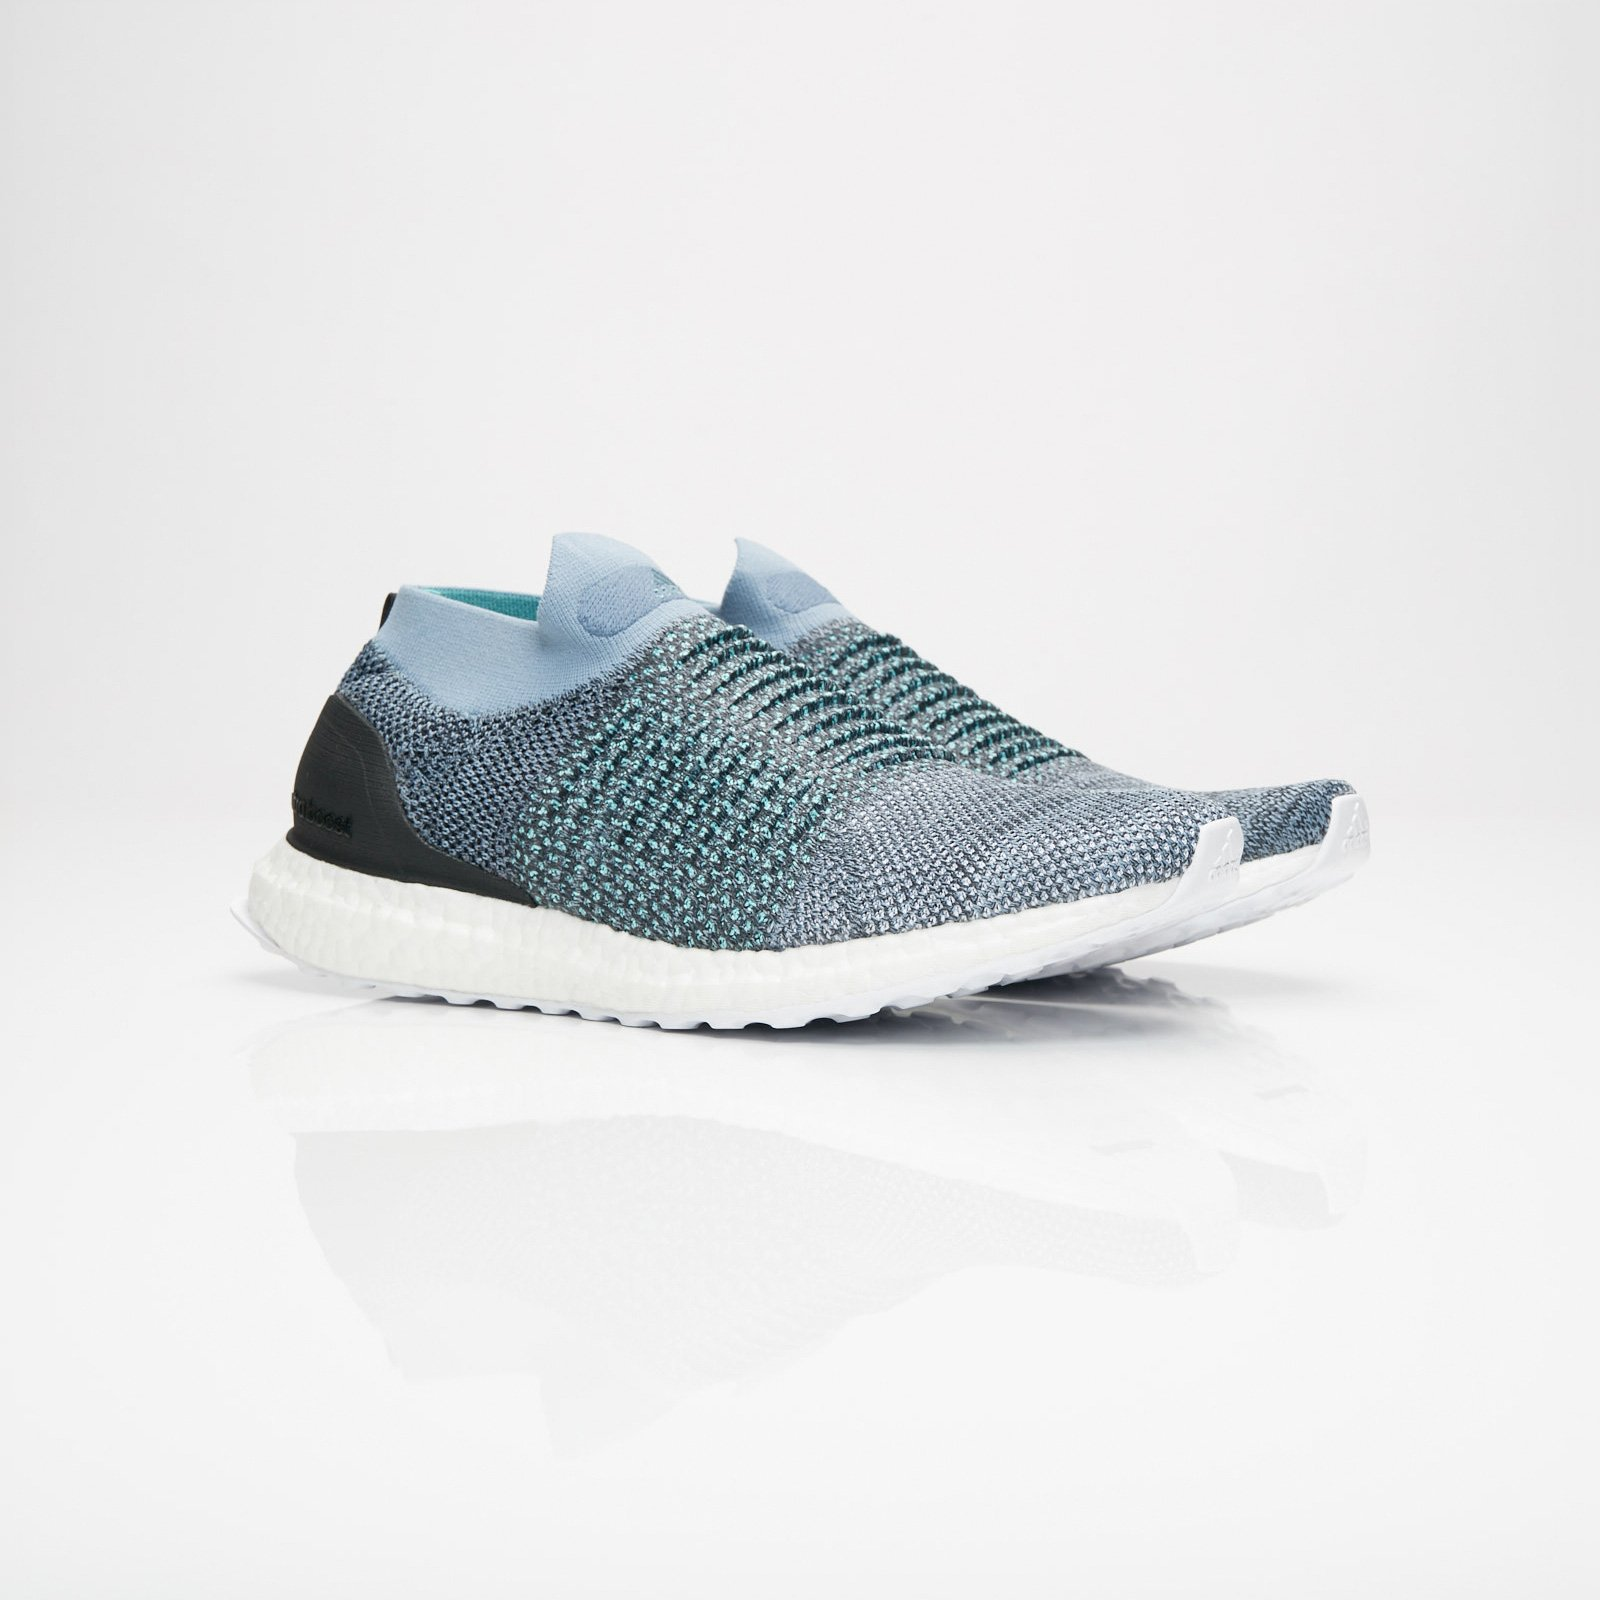 cheap for discount 5953d aa768 adidas Ultraboost Laceless Parley - Cm8271 - Sneakersnstuff ...